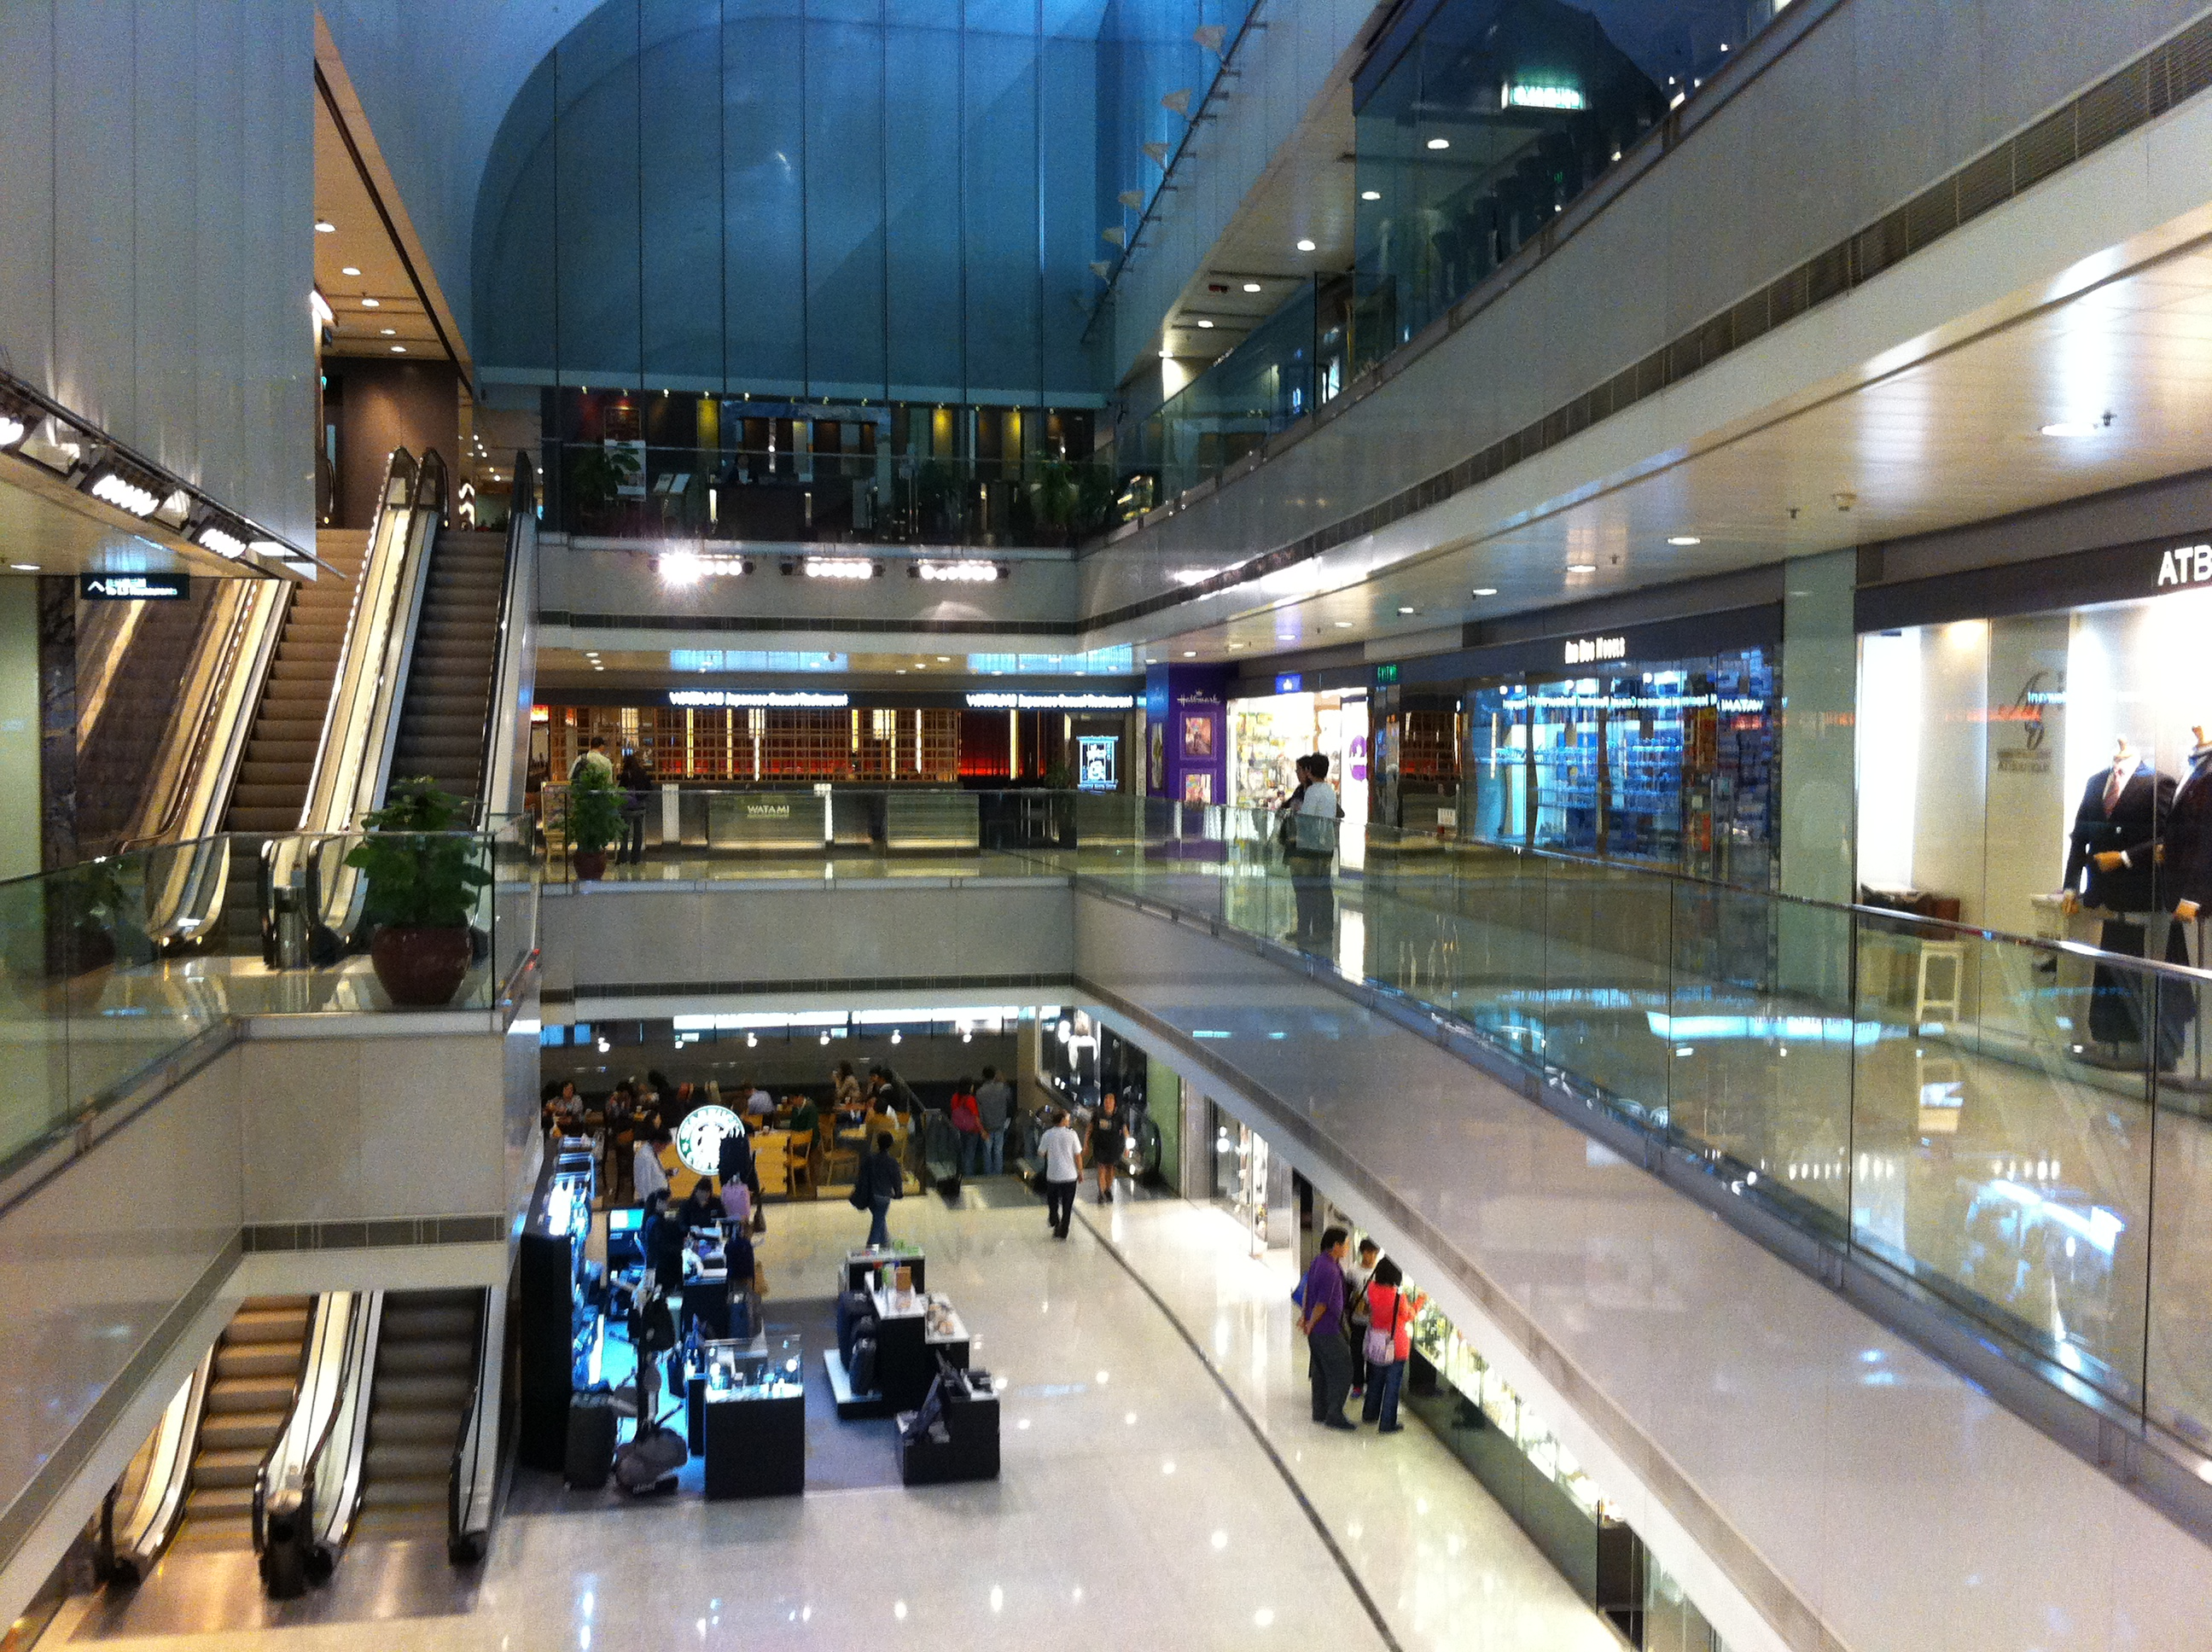 File:HK Central Man Yee Arcade night courtyard VOID ...